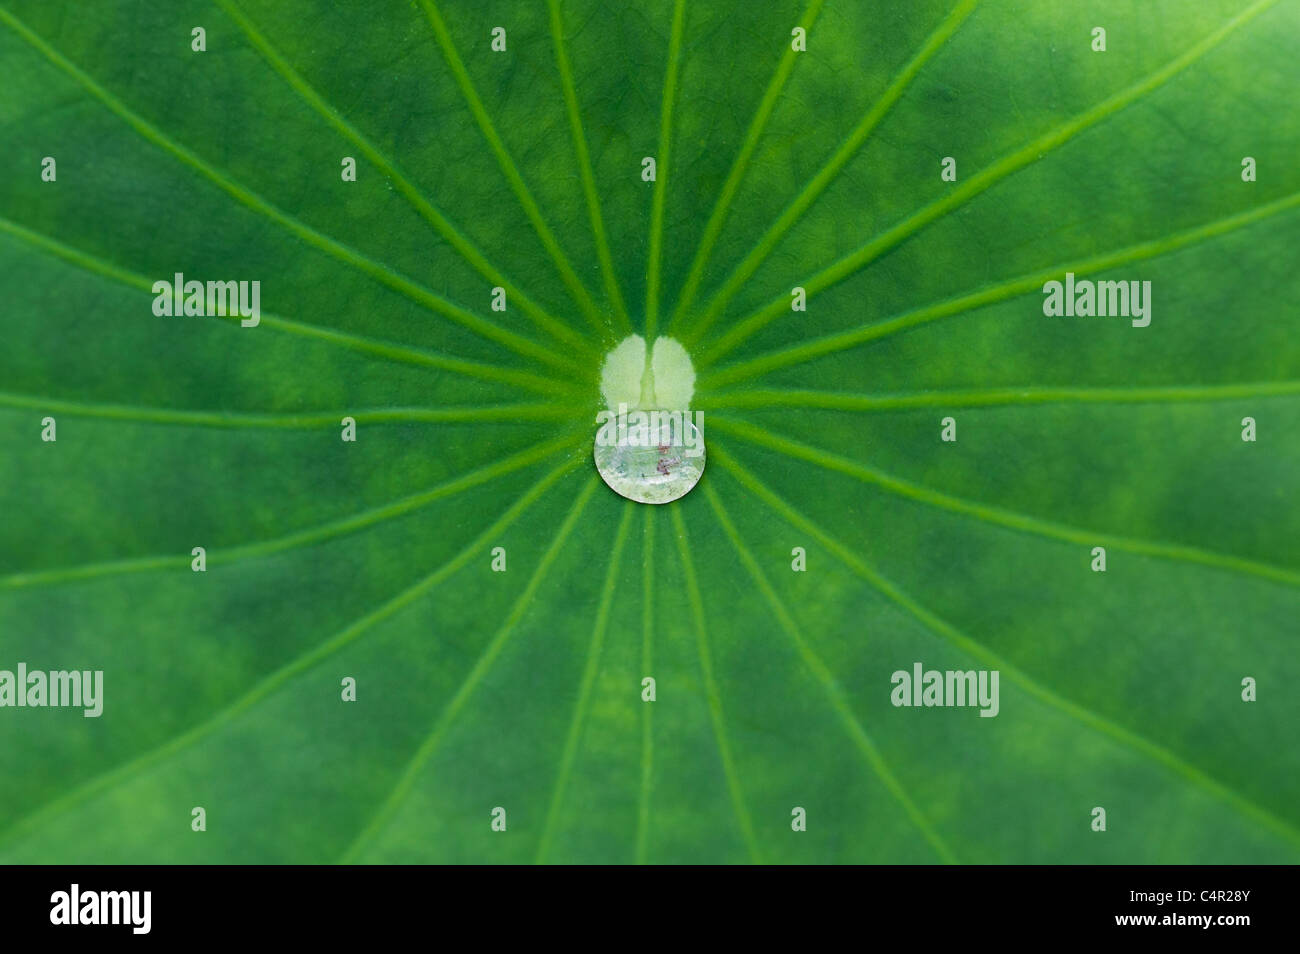 Nelumbo nucifera leaf. Goutte d'eau sur une feuille de lotus. Photo Stock